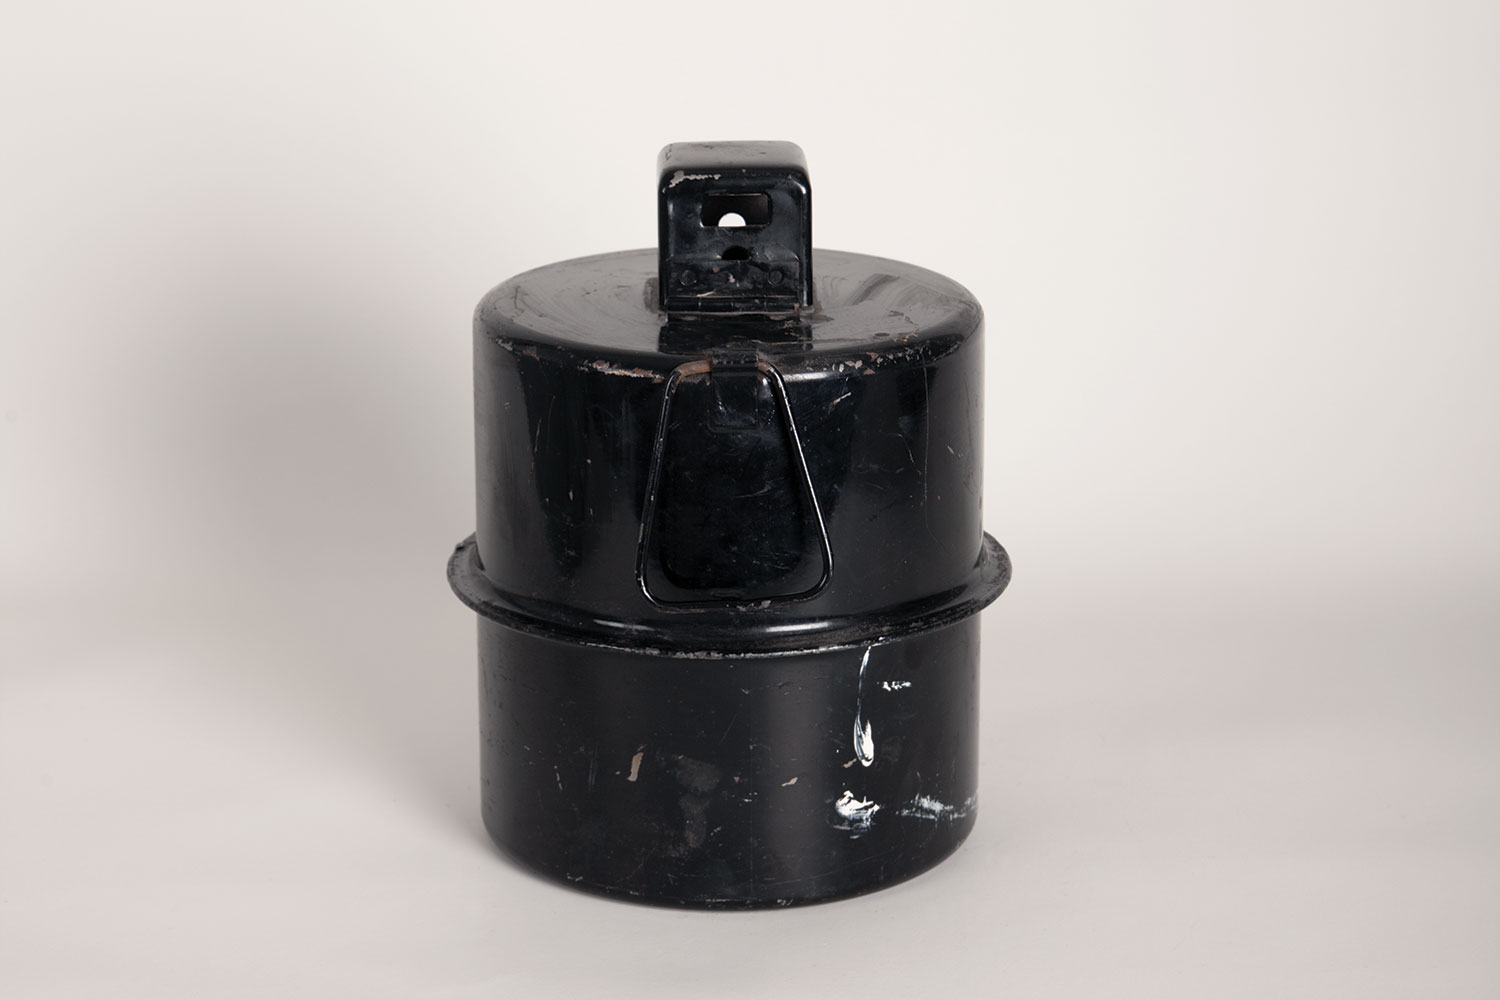 An aviation landing lamp, from the 1940s.